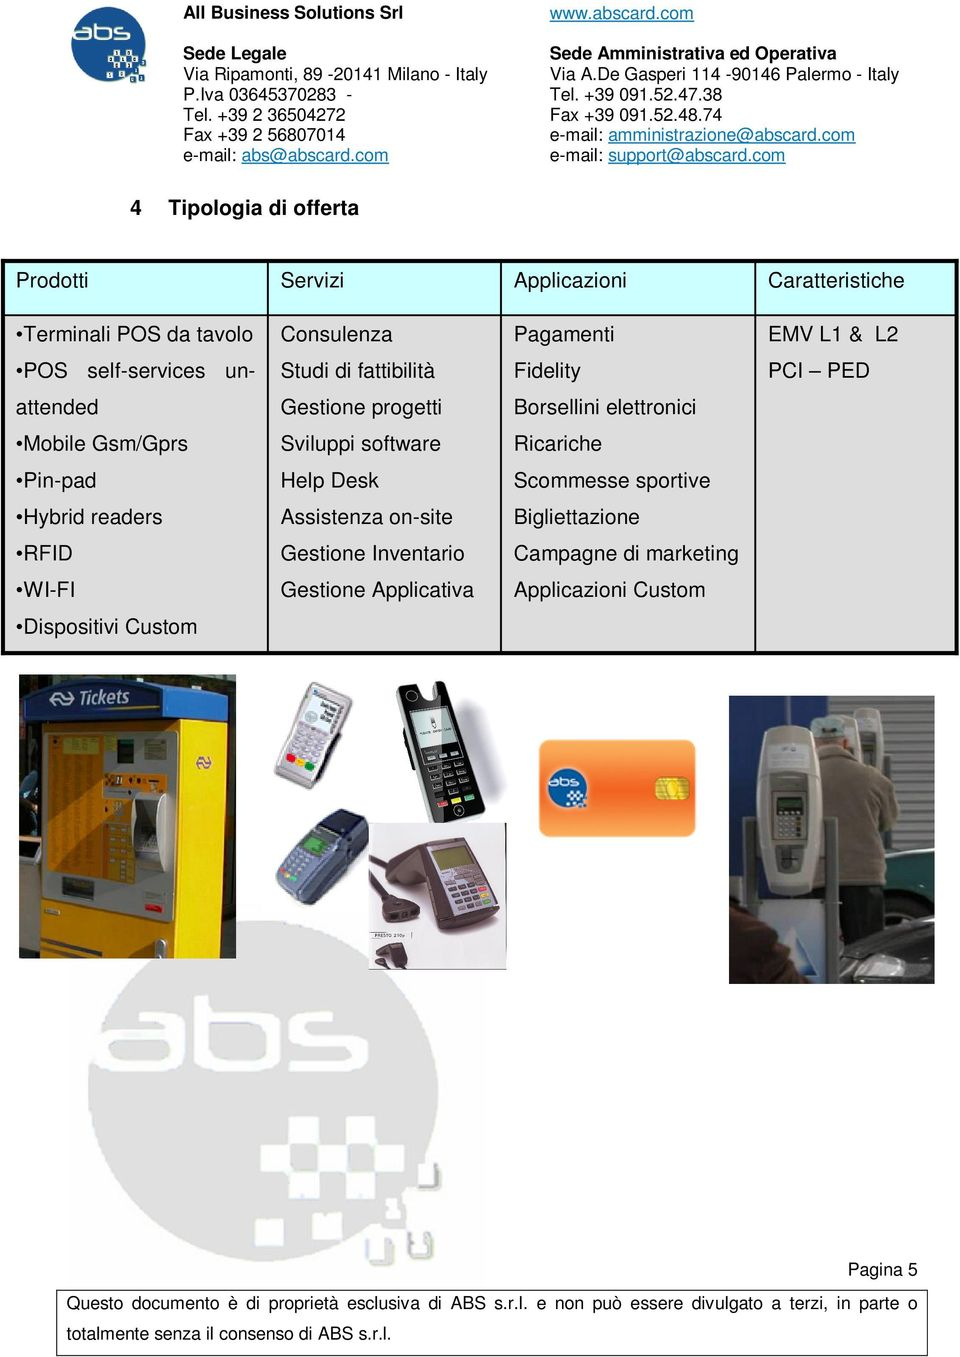 Mobile Gsm/Gprs Sviluppi software Ricariche Pin-pad Help Desk Scommesse sportive Hybrid readers Assistenza on-site